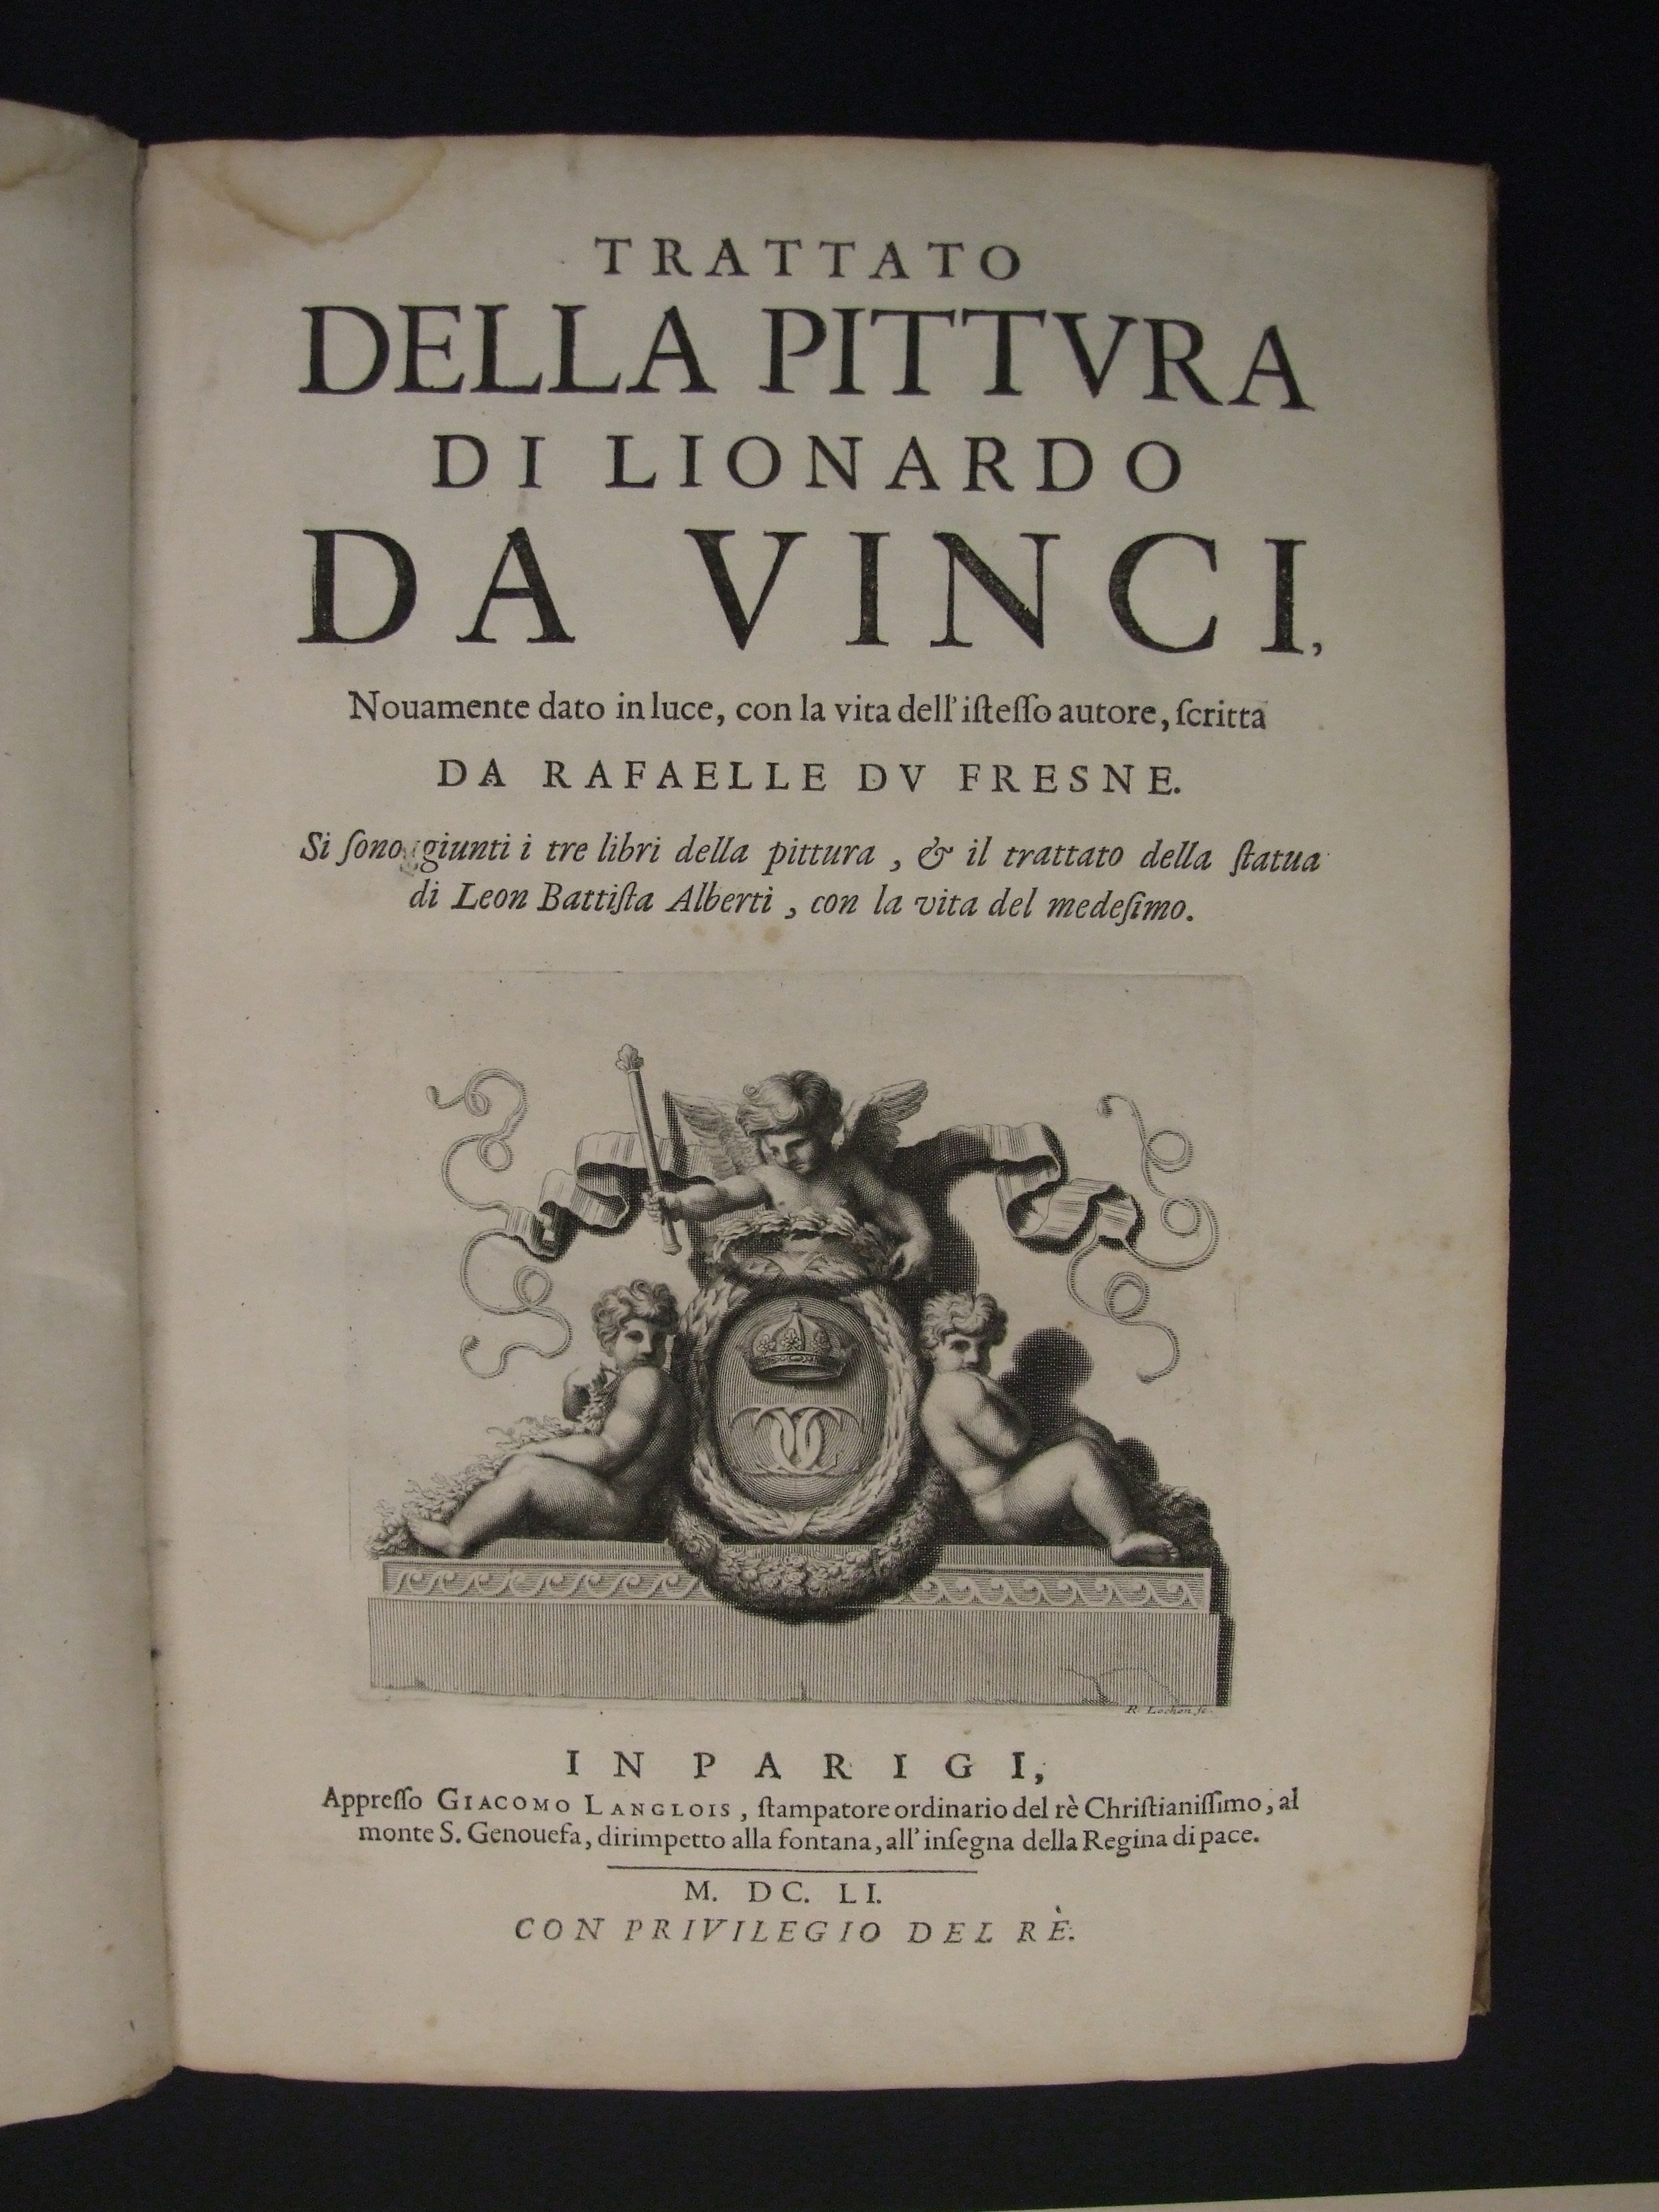 Title page with engraved half-title illustration.